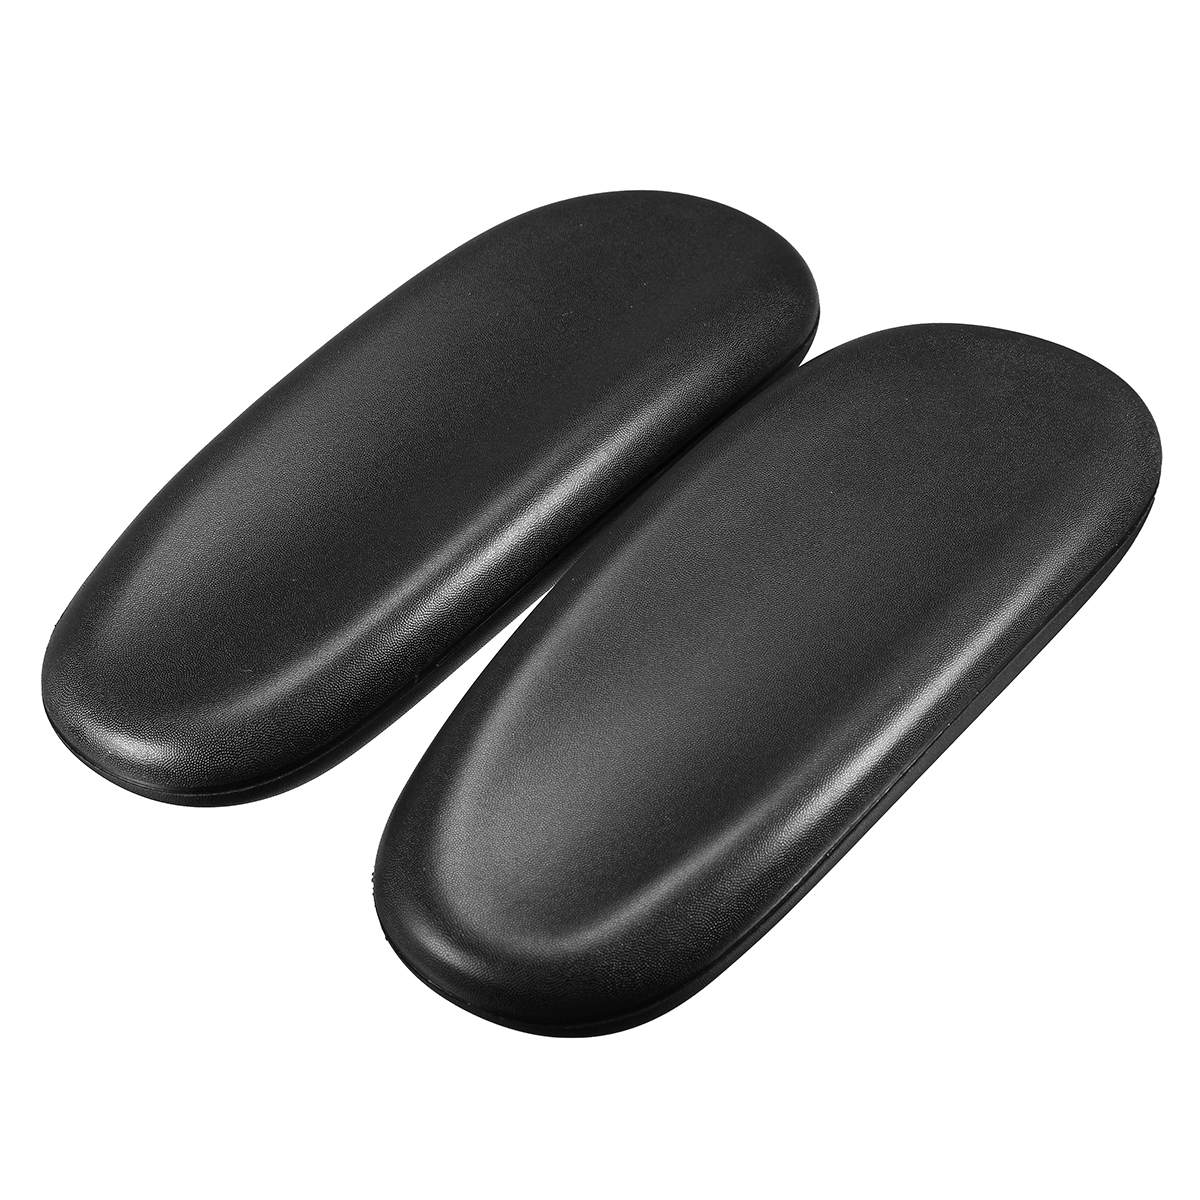 2pcs Chair Armrest Pad Replacement Office Chair Parts Support Arm Cushion Pads 25x9.8x3.6cm